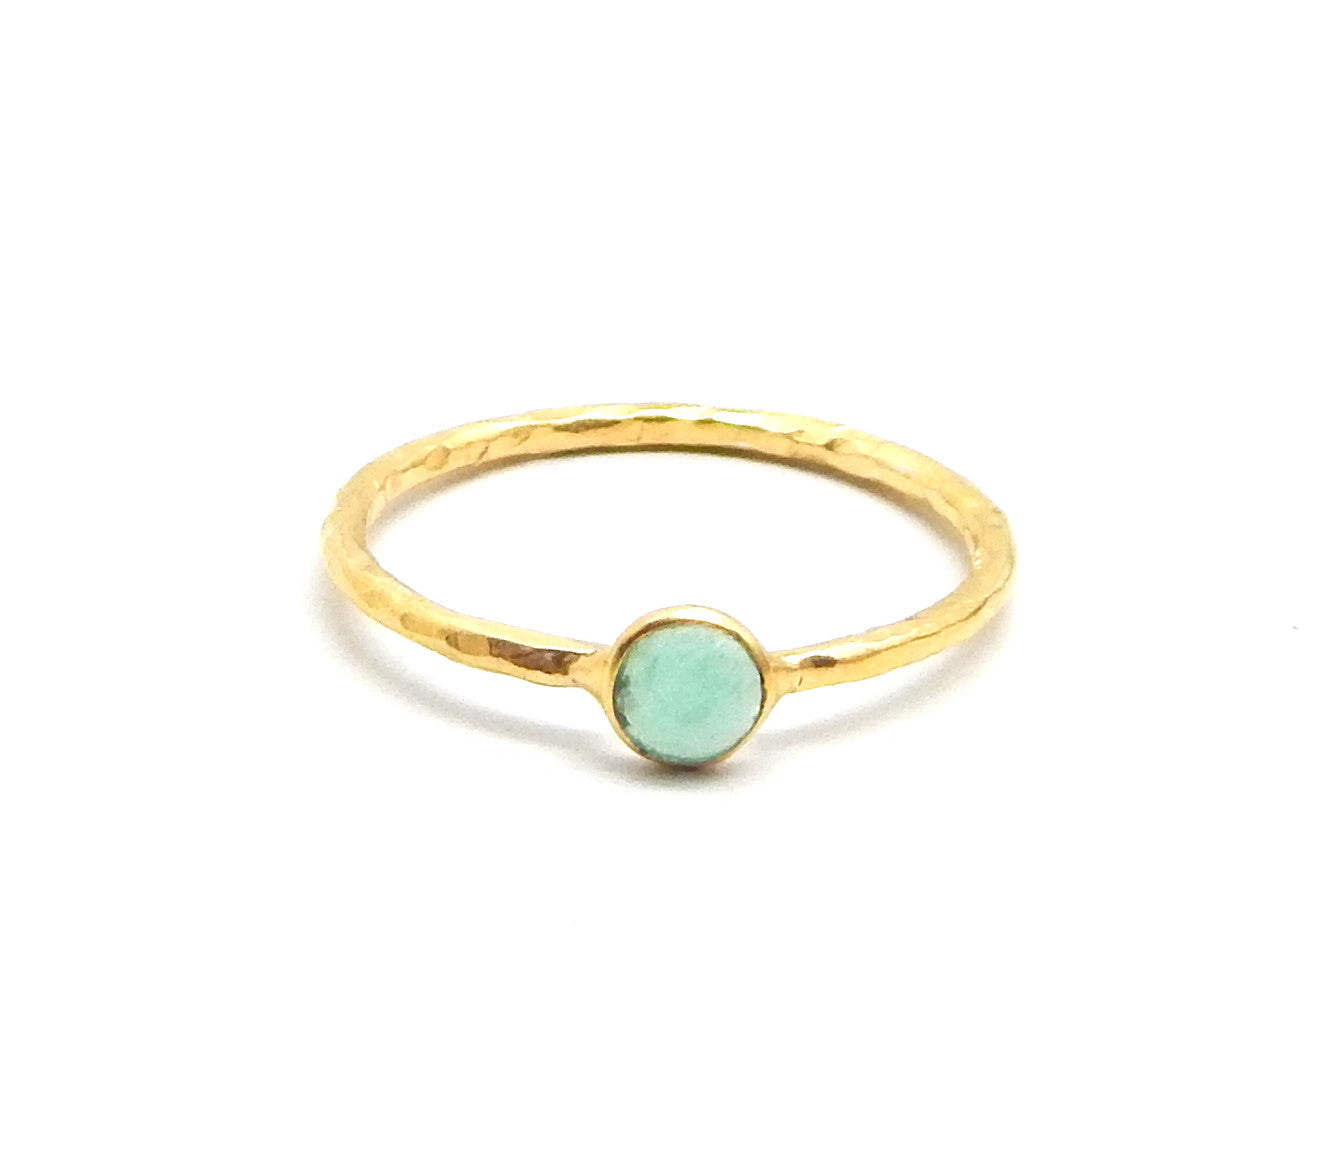 Aqua Chalcedony Dot Ring - An Indian Summer